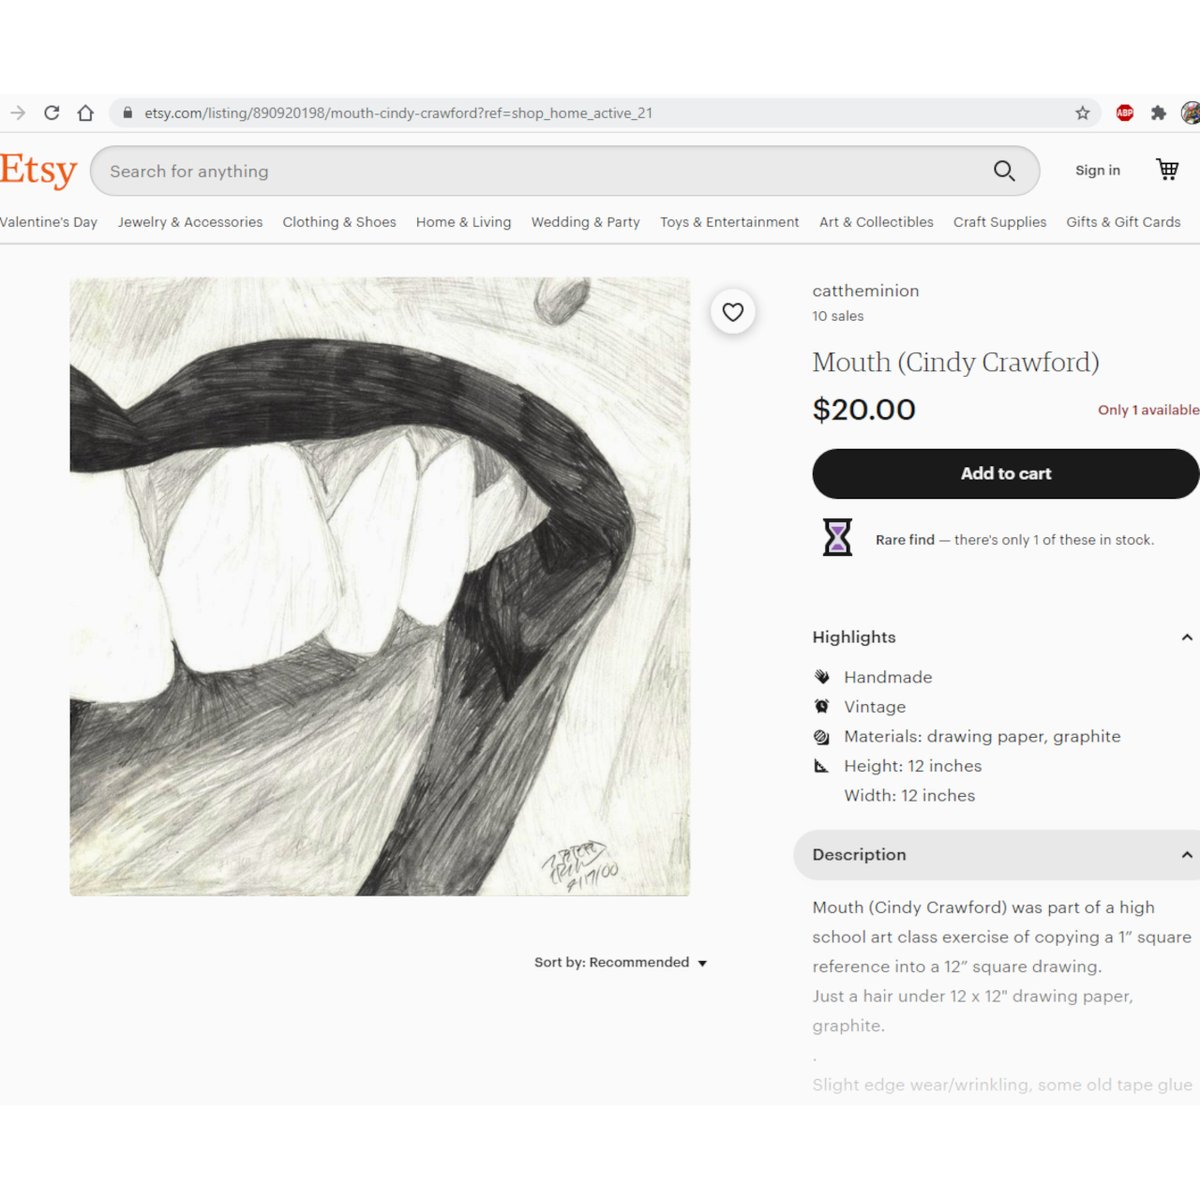 #forsale in my #etsyshop #mouth (#cindycrawford)   10% of profit to #charity! Buy 3+ items, get 17% off w/code 3STAR17! #art #lgbtartists #drawing #graphite #blackandwhite #artsale #arttherapy #celebrity #female #extremecloseup #charitabledonation #etsy